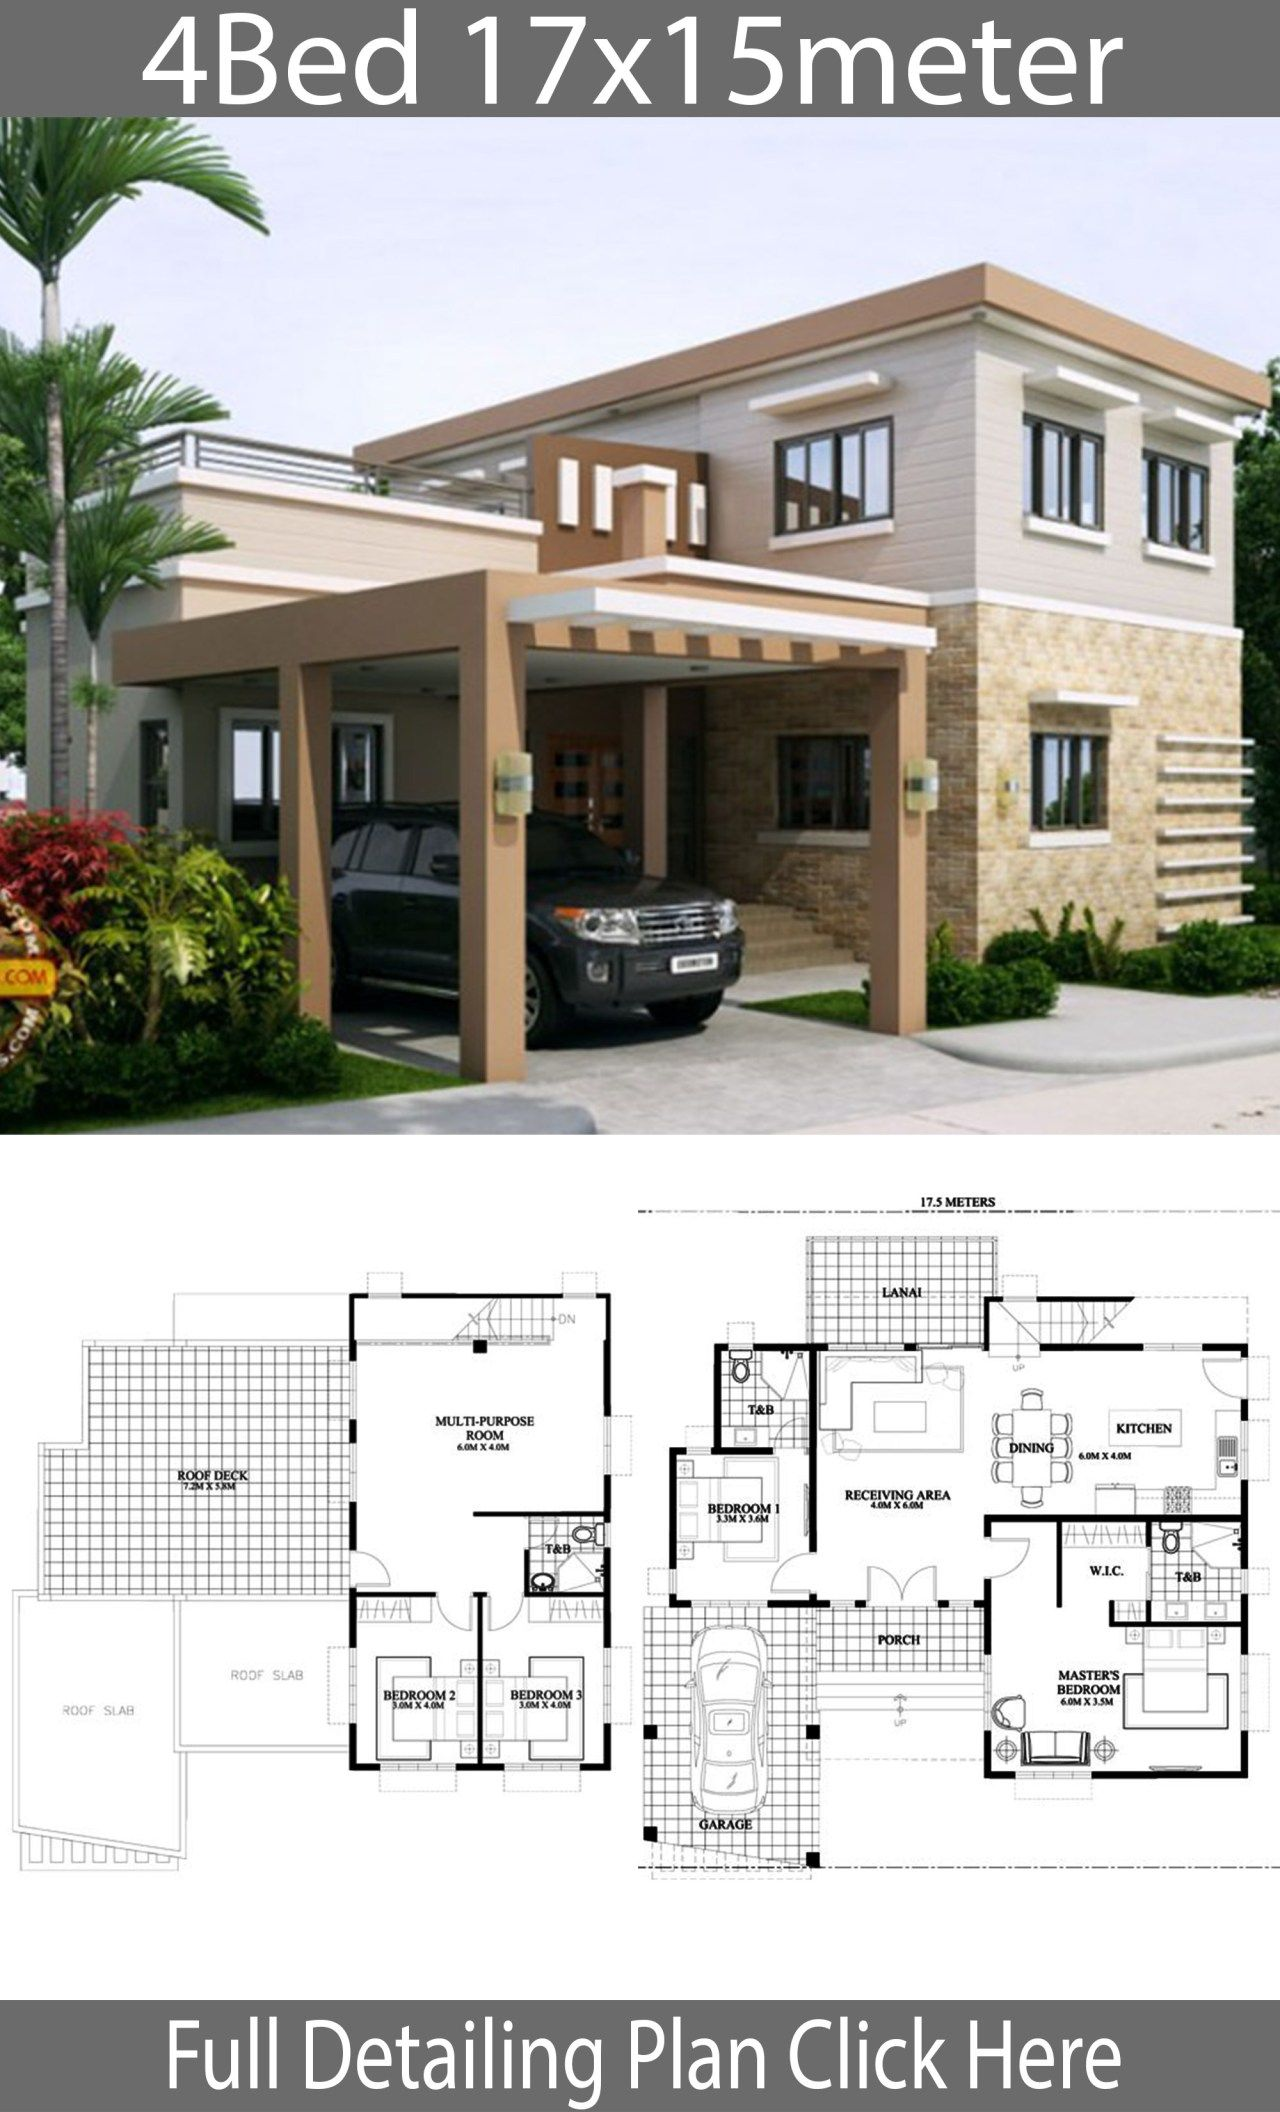 Home Design 17x15m With 4 Bedrooms Home Ideas Home Building Design House Design House Construction Plan